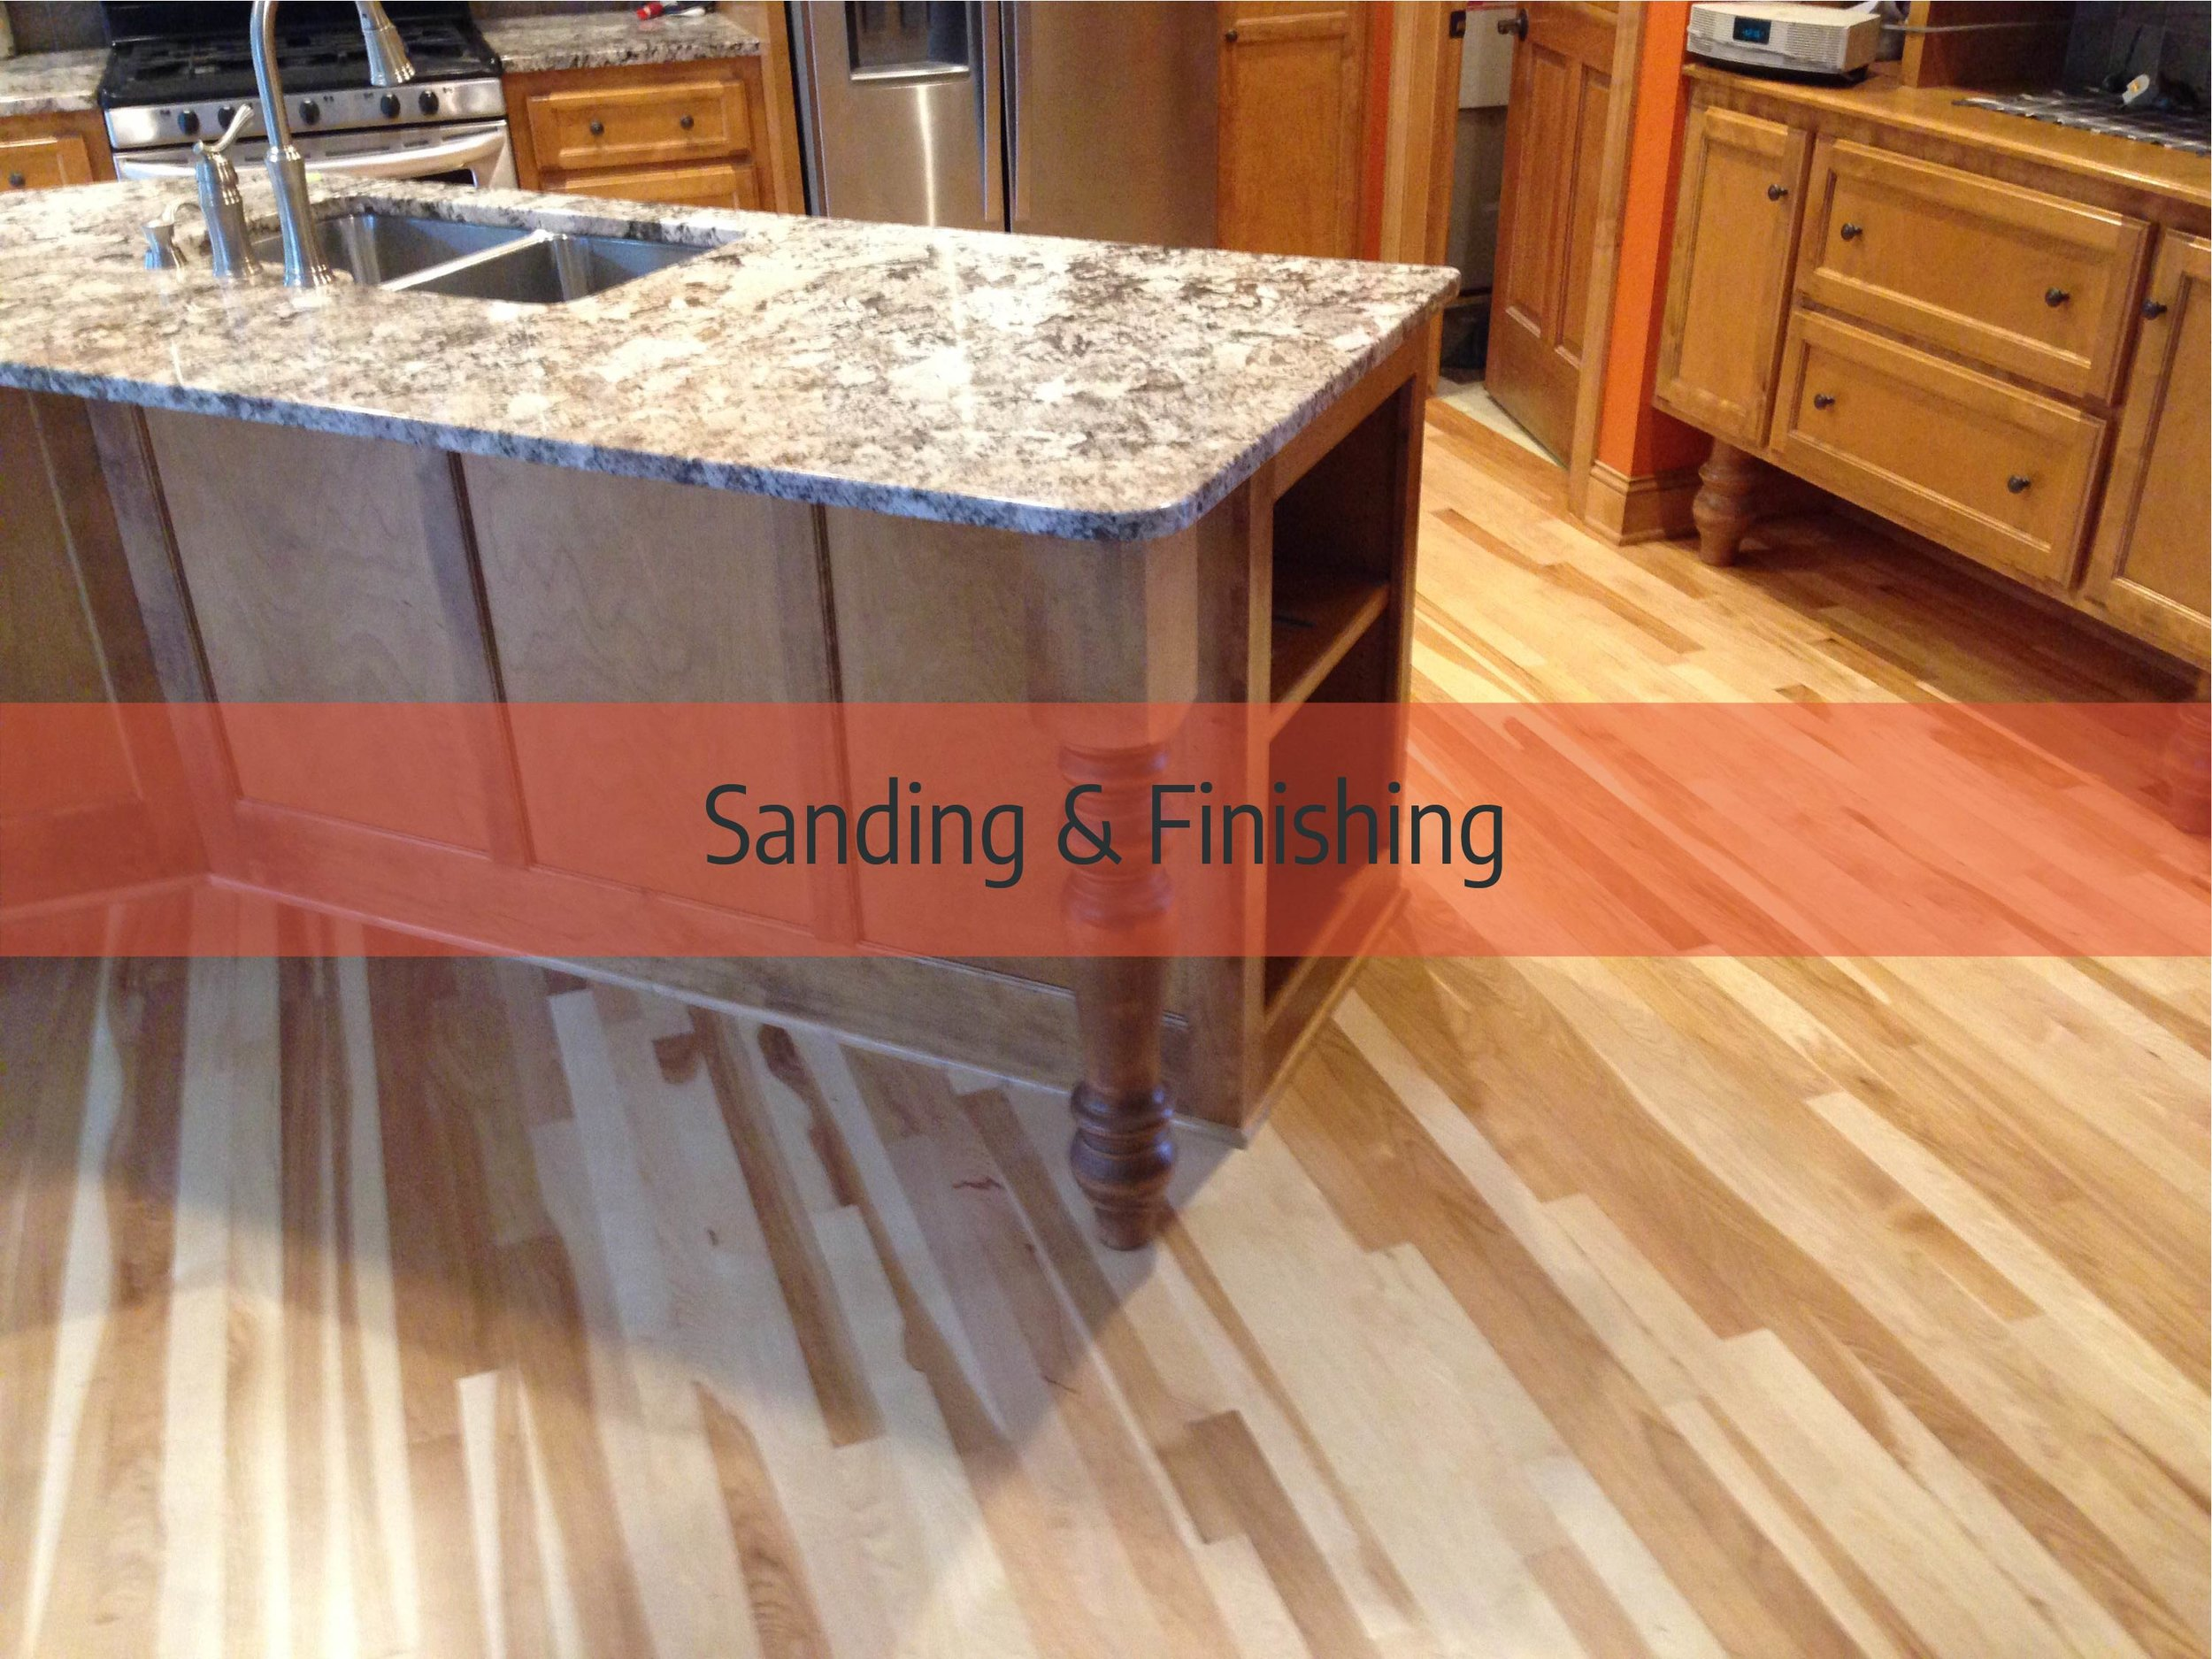 Hardwood floor sanding & finishing